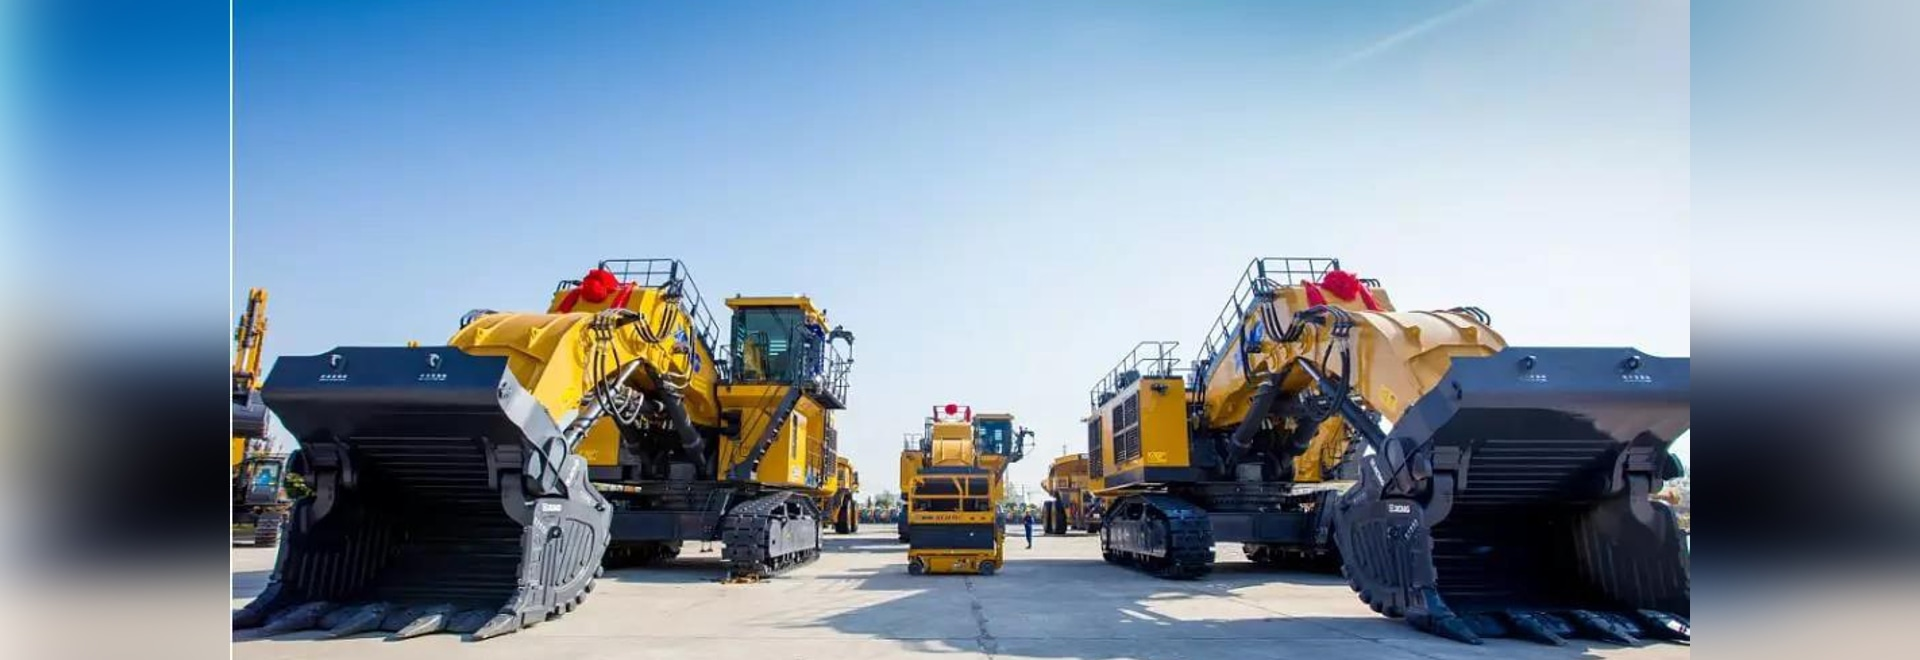 XCMG Large Mining Equipment Delivered to Australia